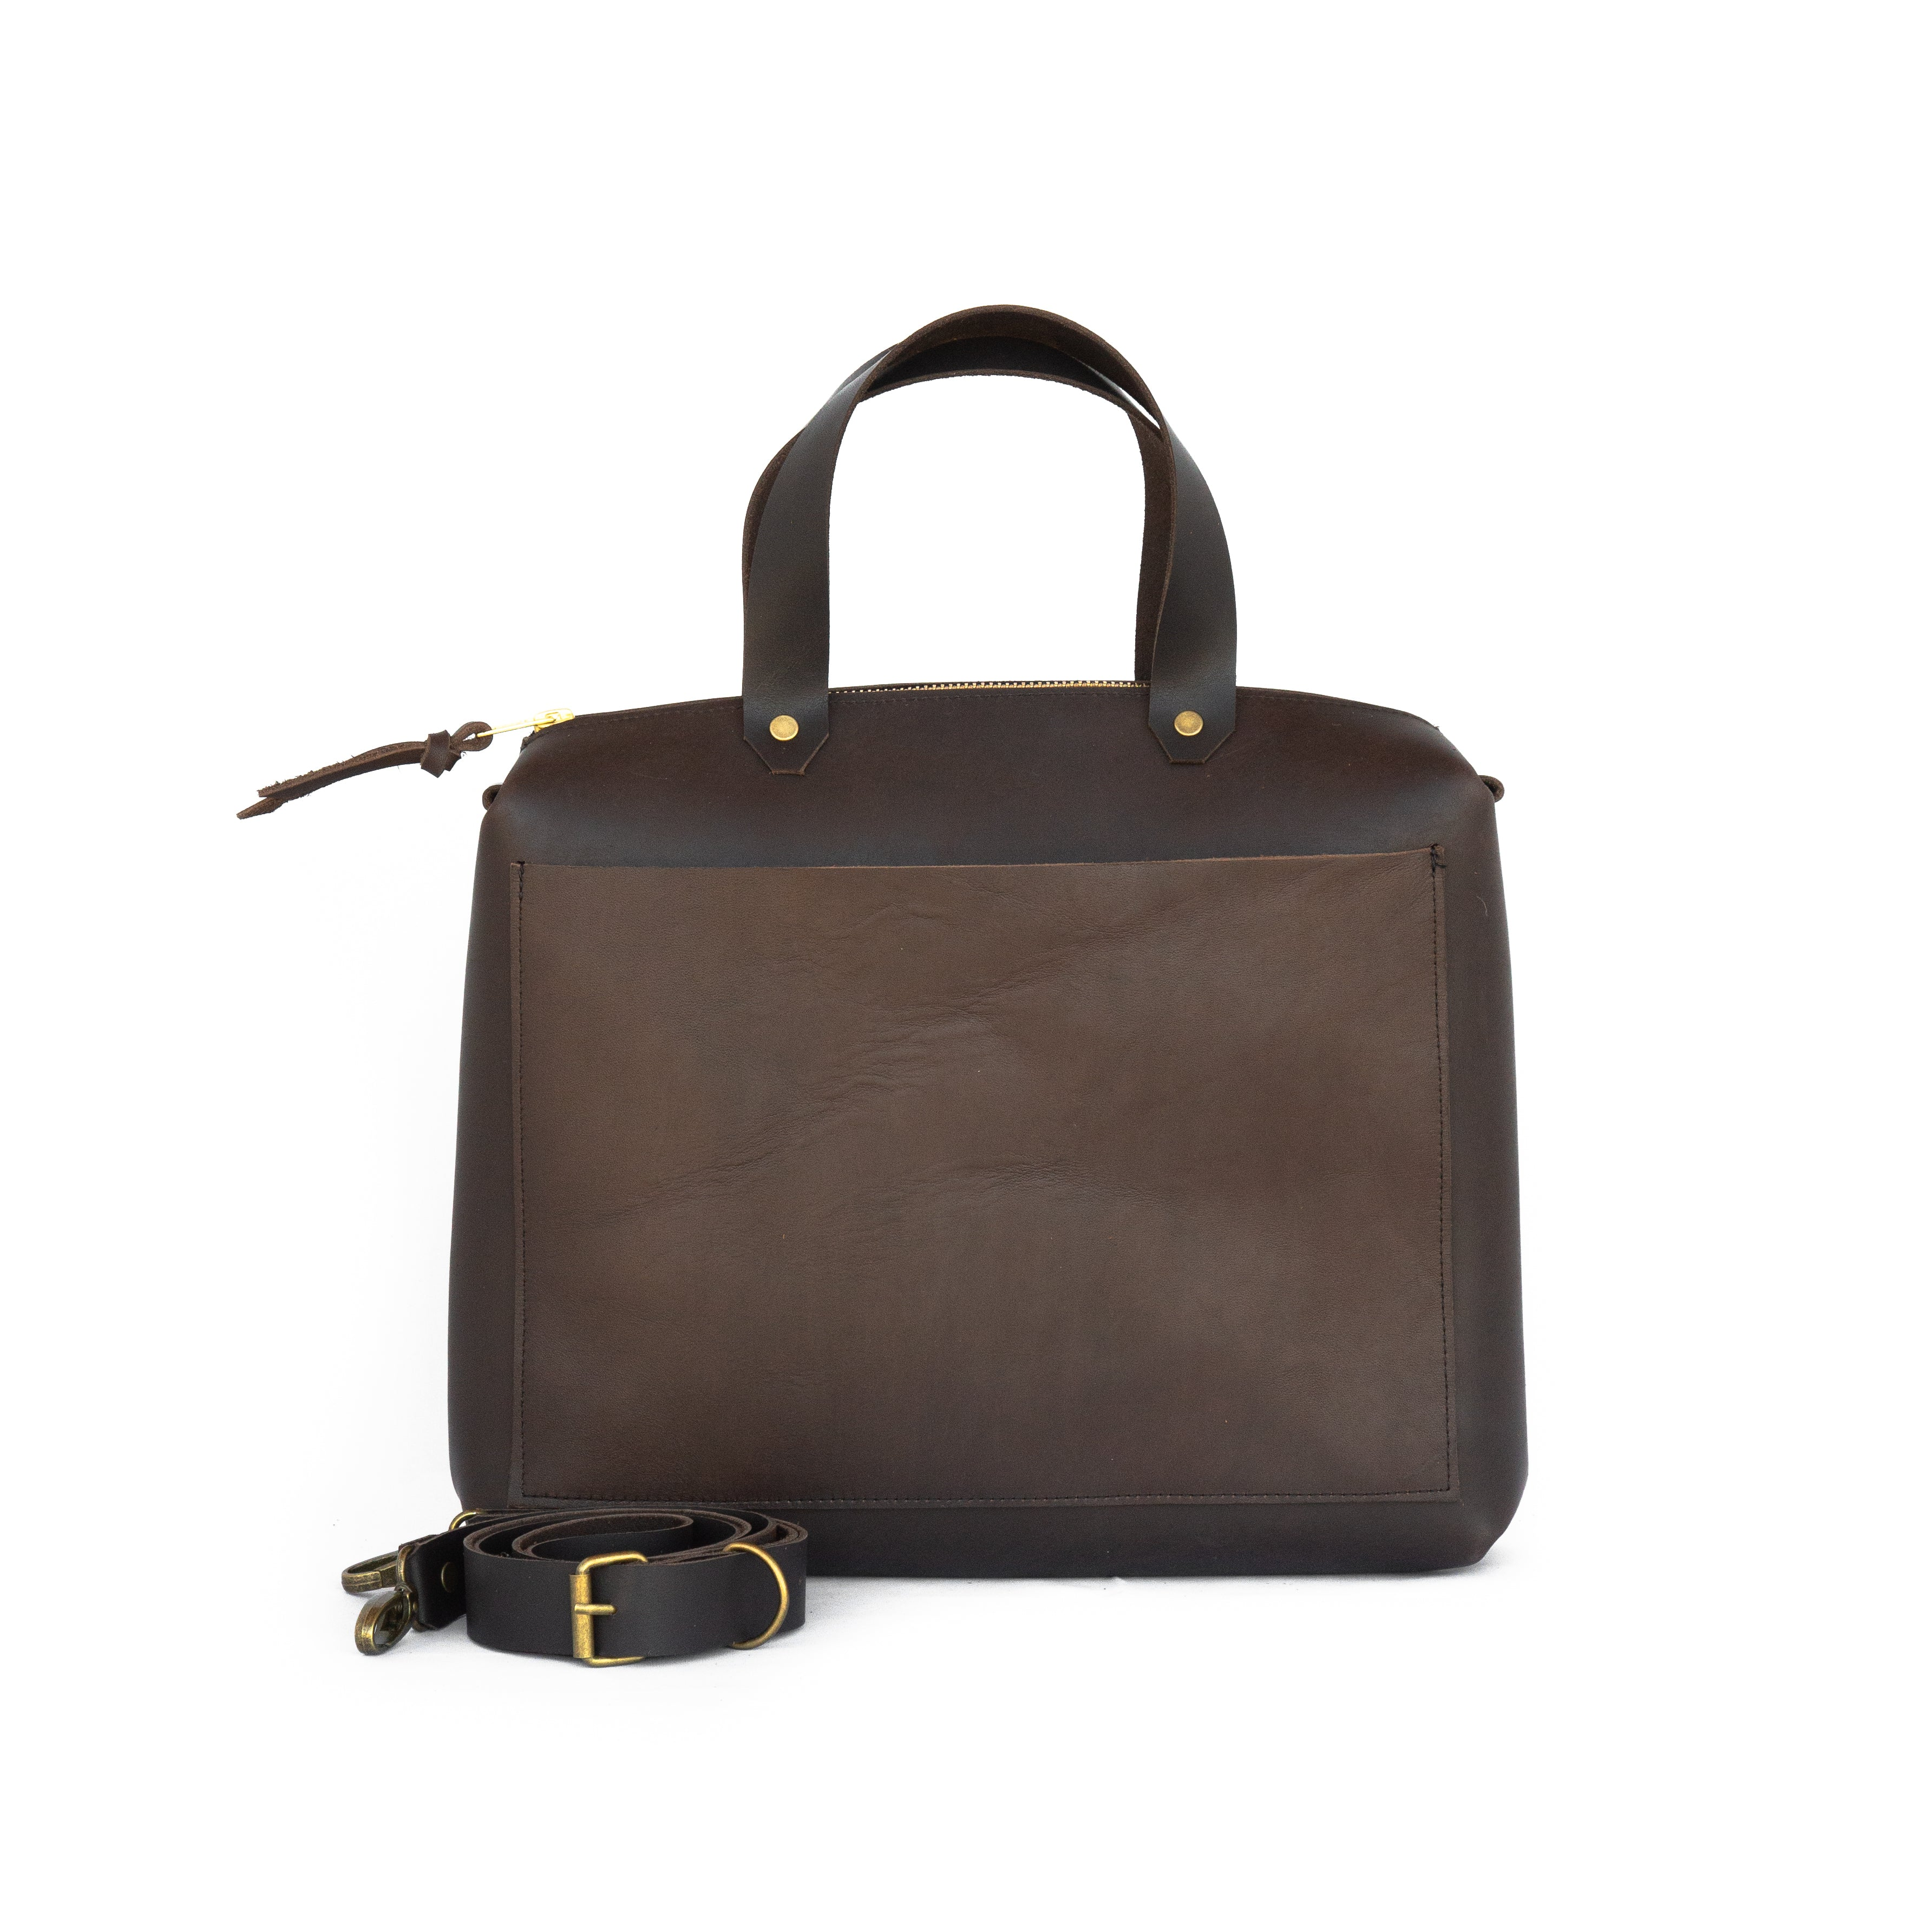 Spy Bag In Dark Brown Leather - handcrafted by Market Canvas Leather in Tofino, BC, Canada